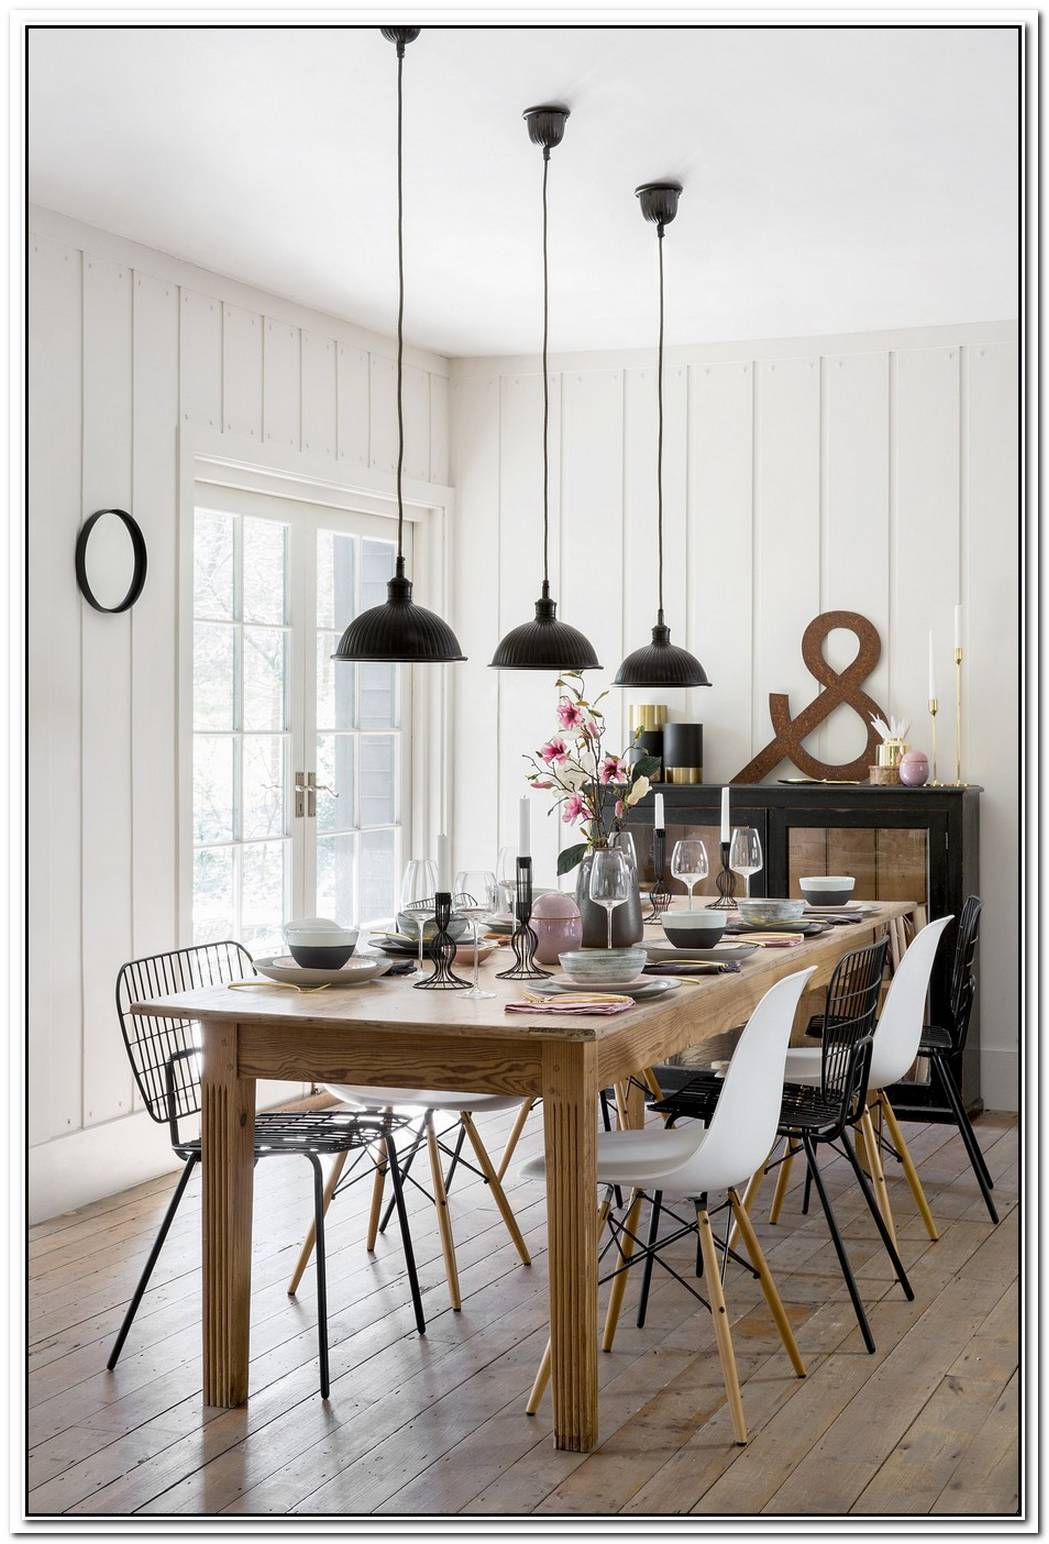 10 Modern Dining Room Ideas That Are Dinner Party Ready